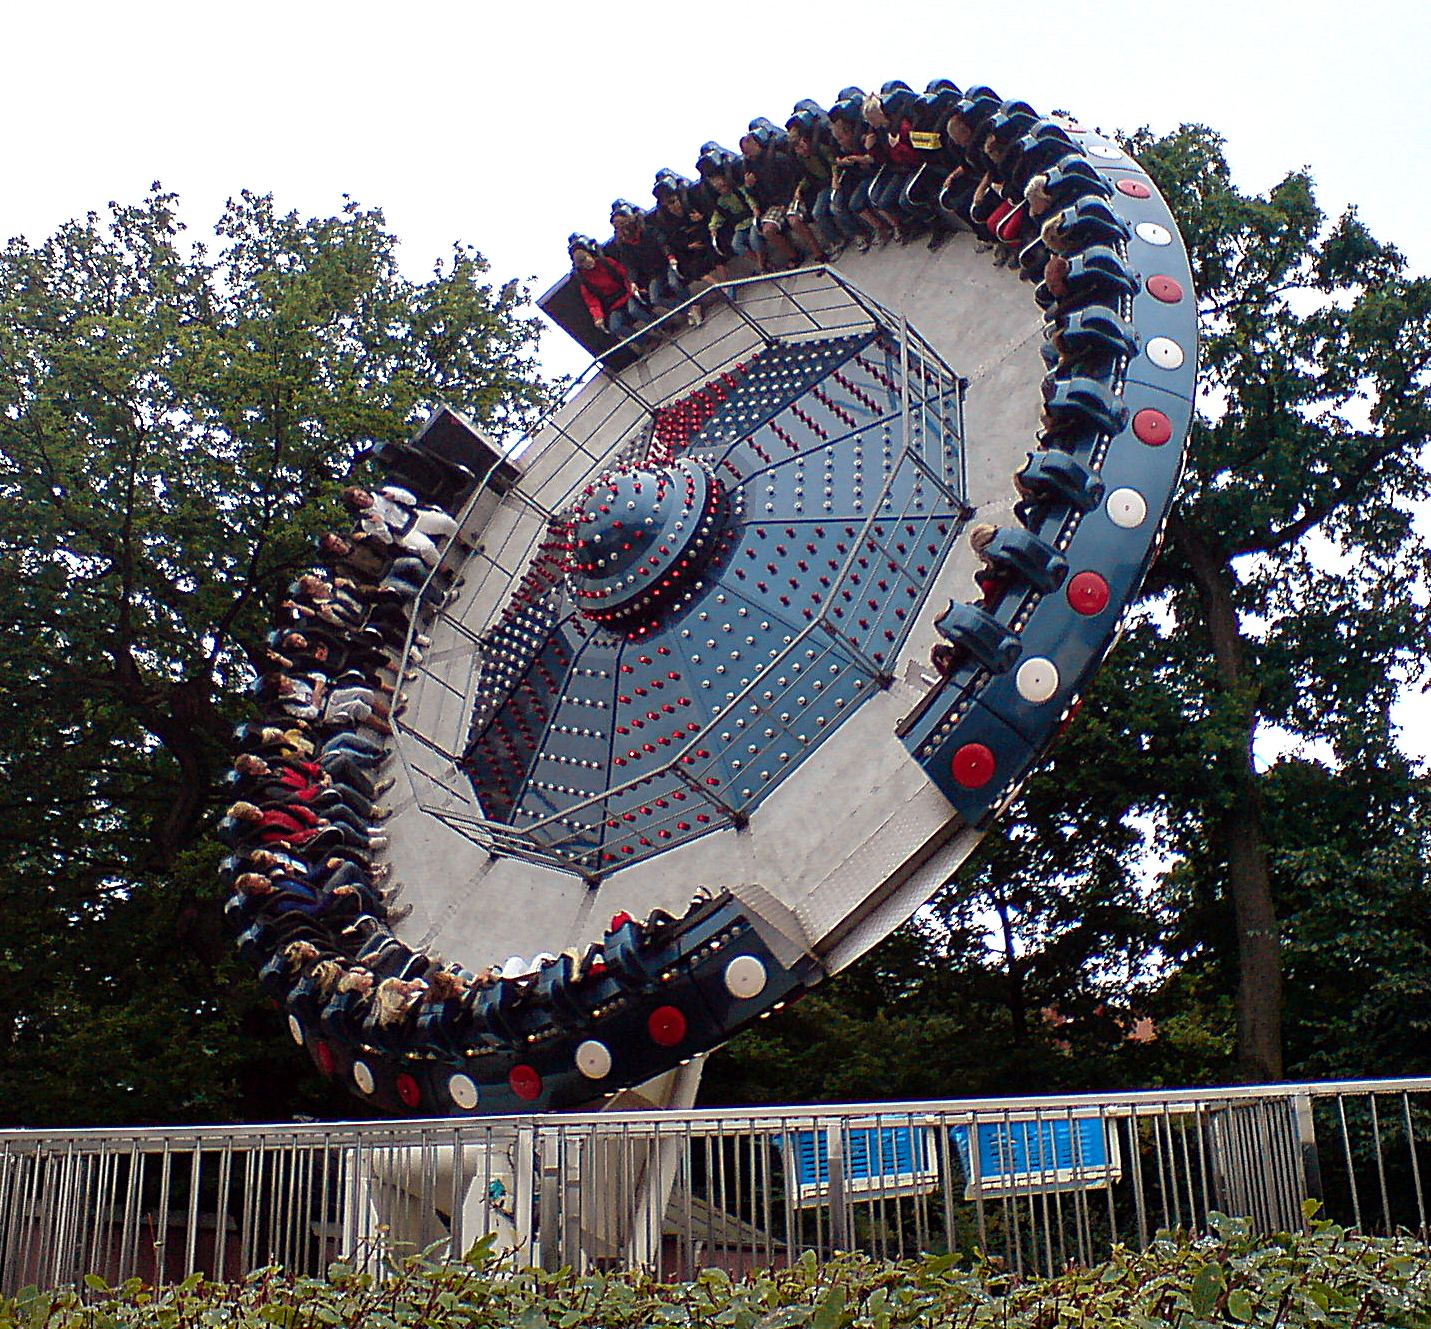 http://upload.wikimedia.org/wikipedia/commons/5/56/Tornado_liseberg.JPG